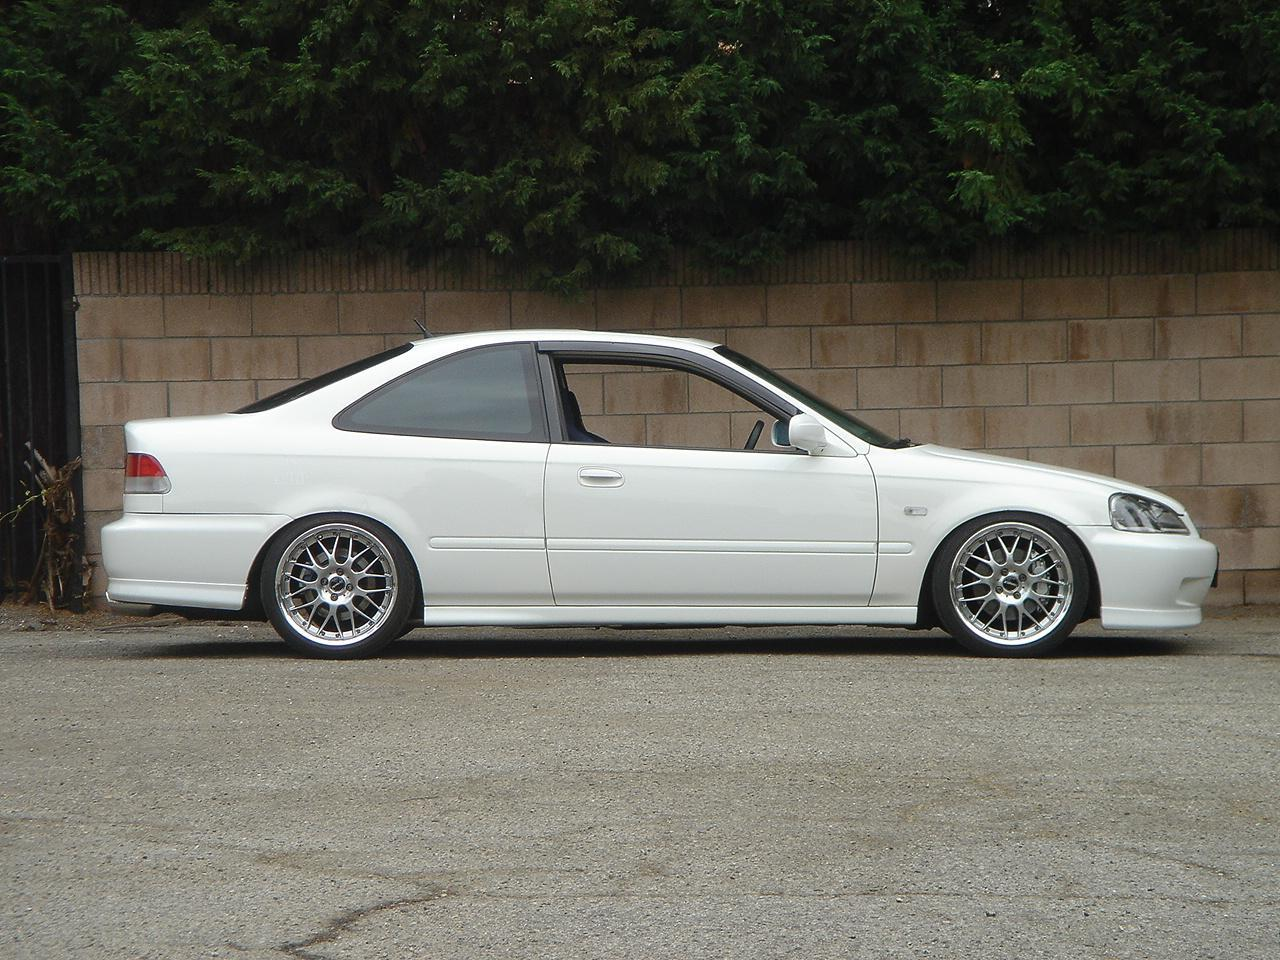 High Quality Photo 3 Honda Civic Custom Wheels WORK Termist TM 1 Reloaded 17x8.0,